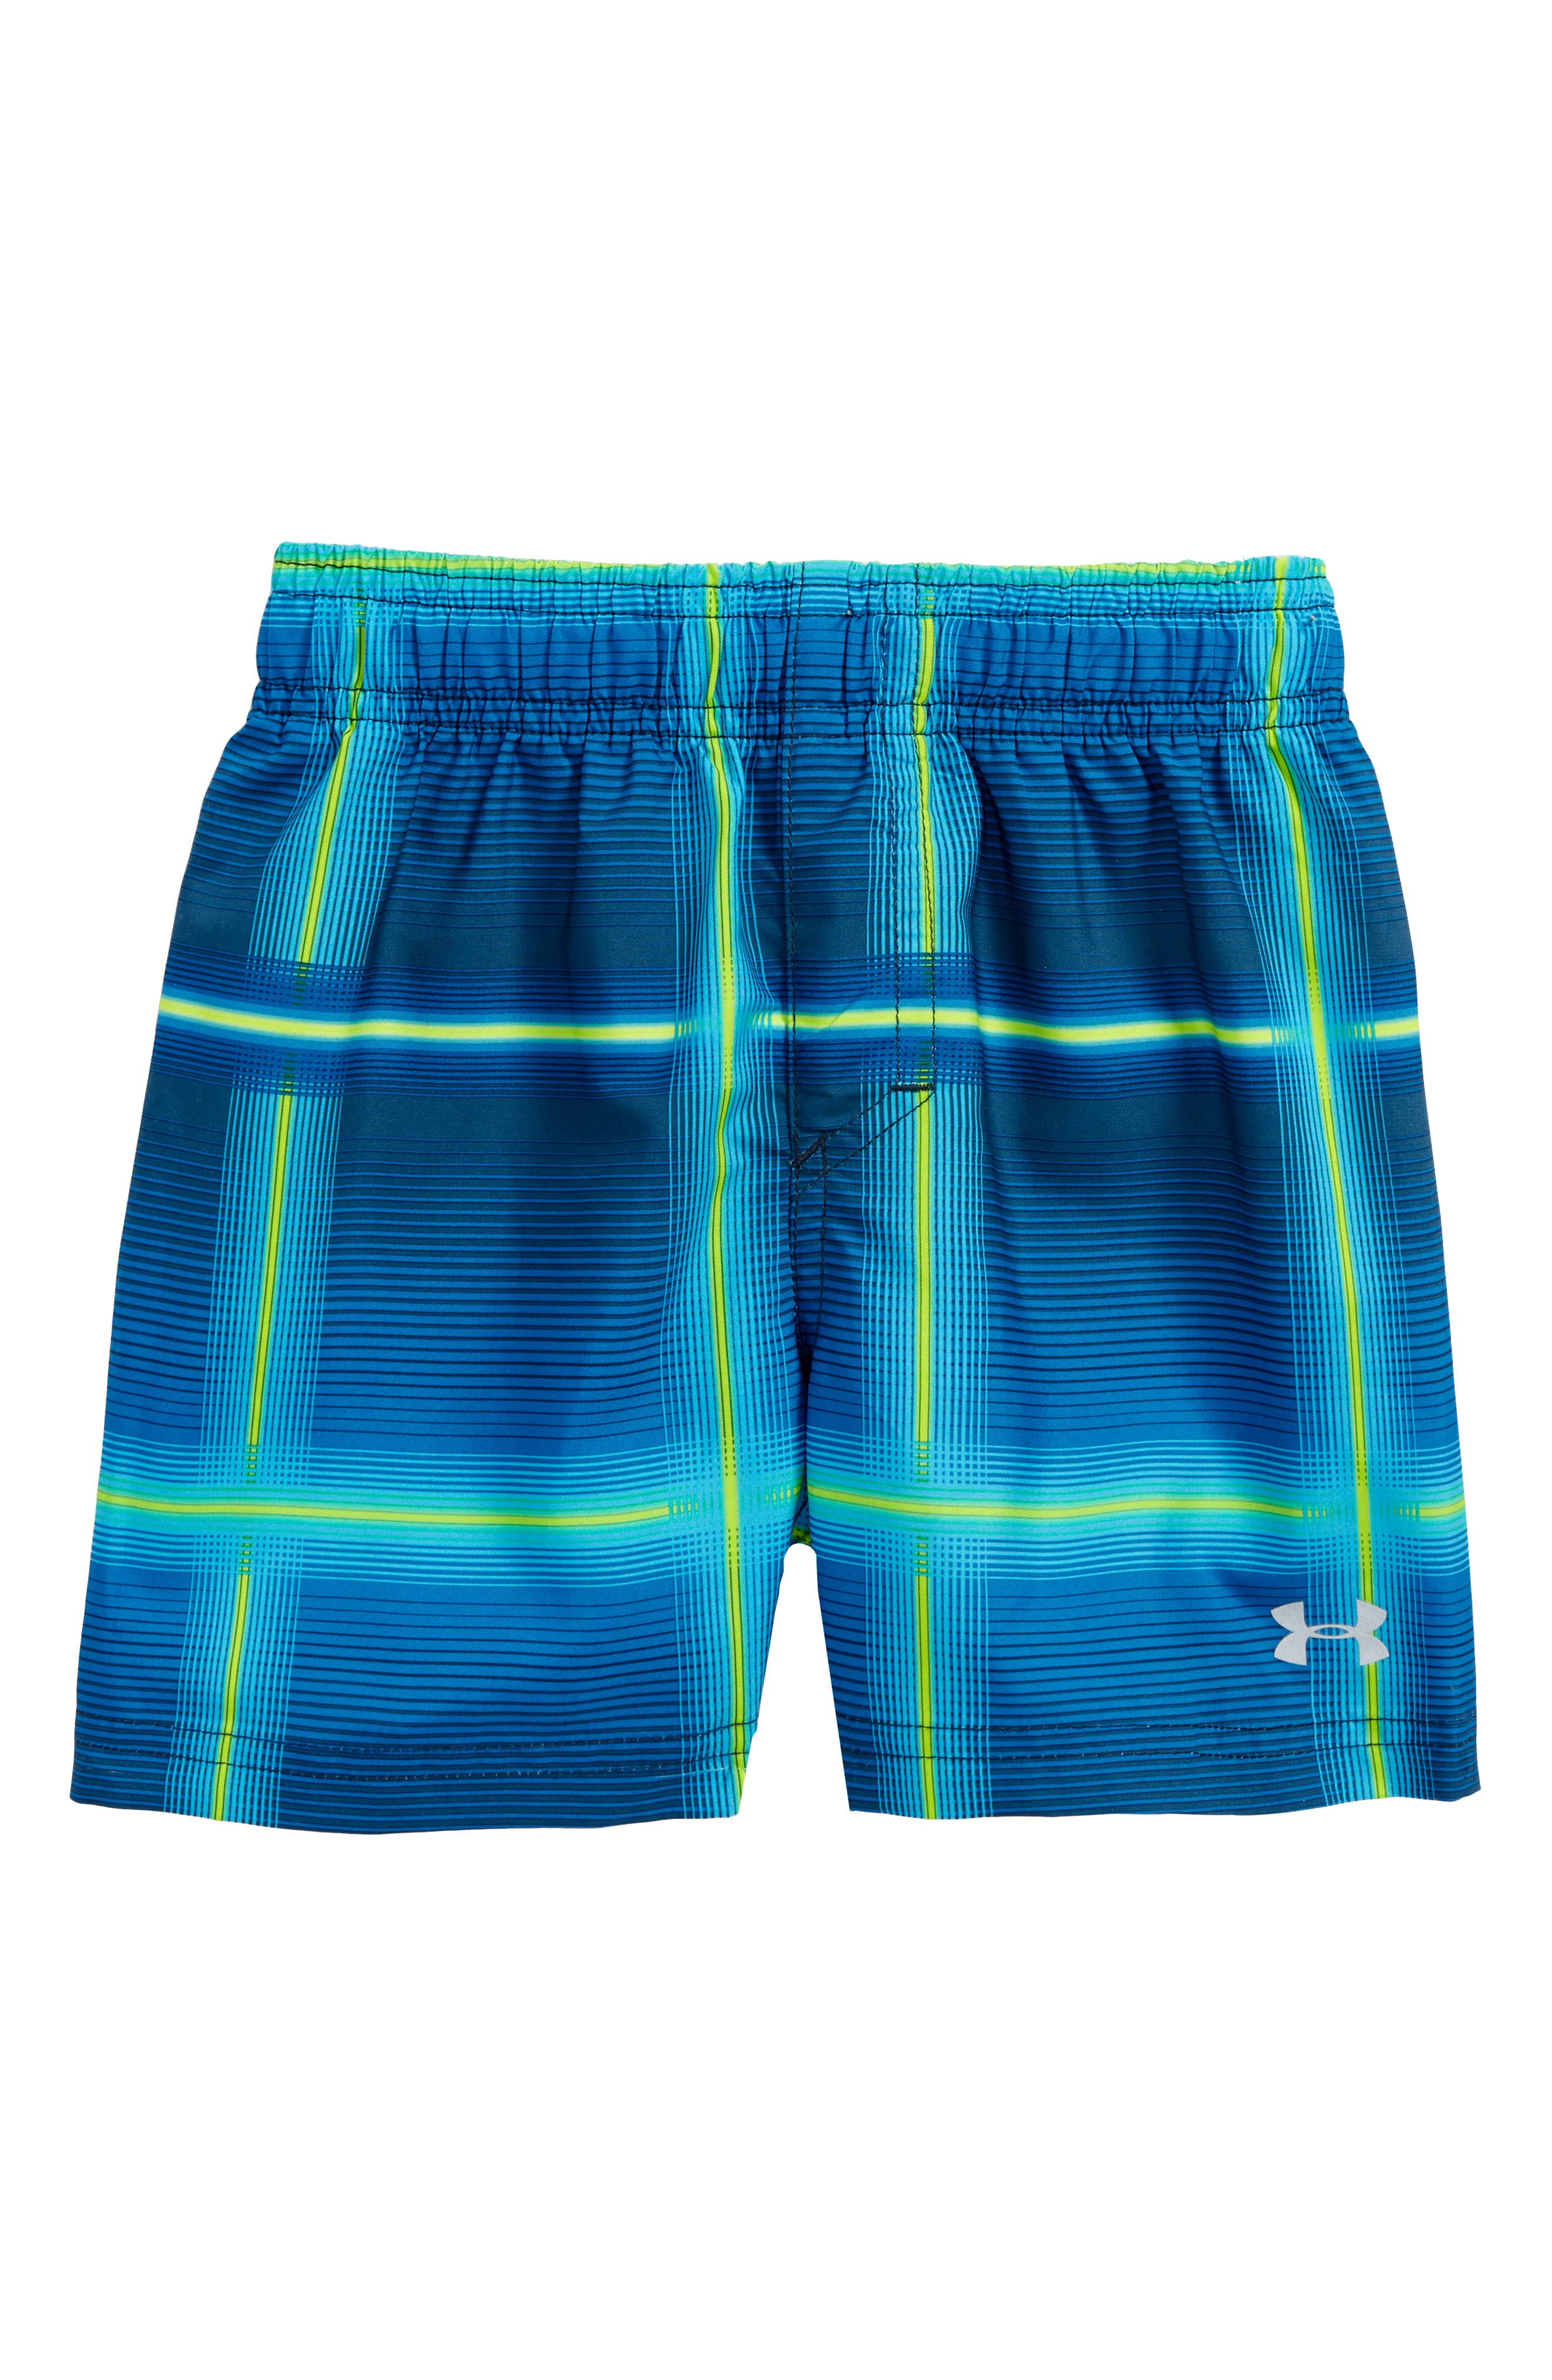 Volt Plaid Volley Swim Trunks,                         Main,                         color, True Ink